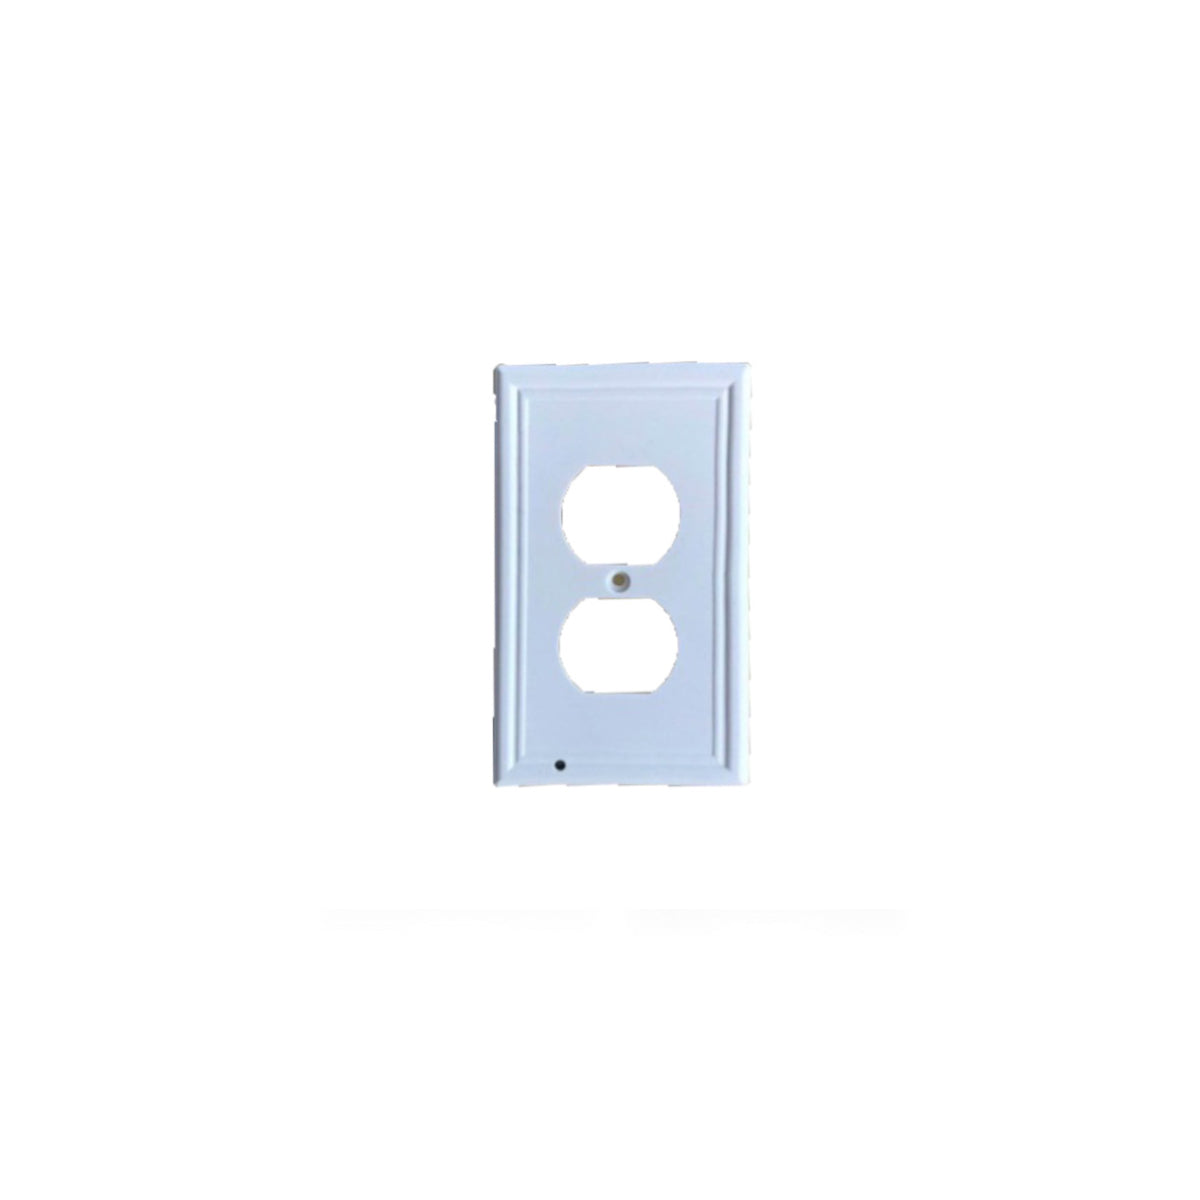 shopify-Path Lighter Auto Motion Wall Plate LED Light  2- PACK-13